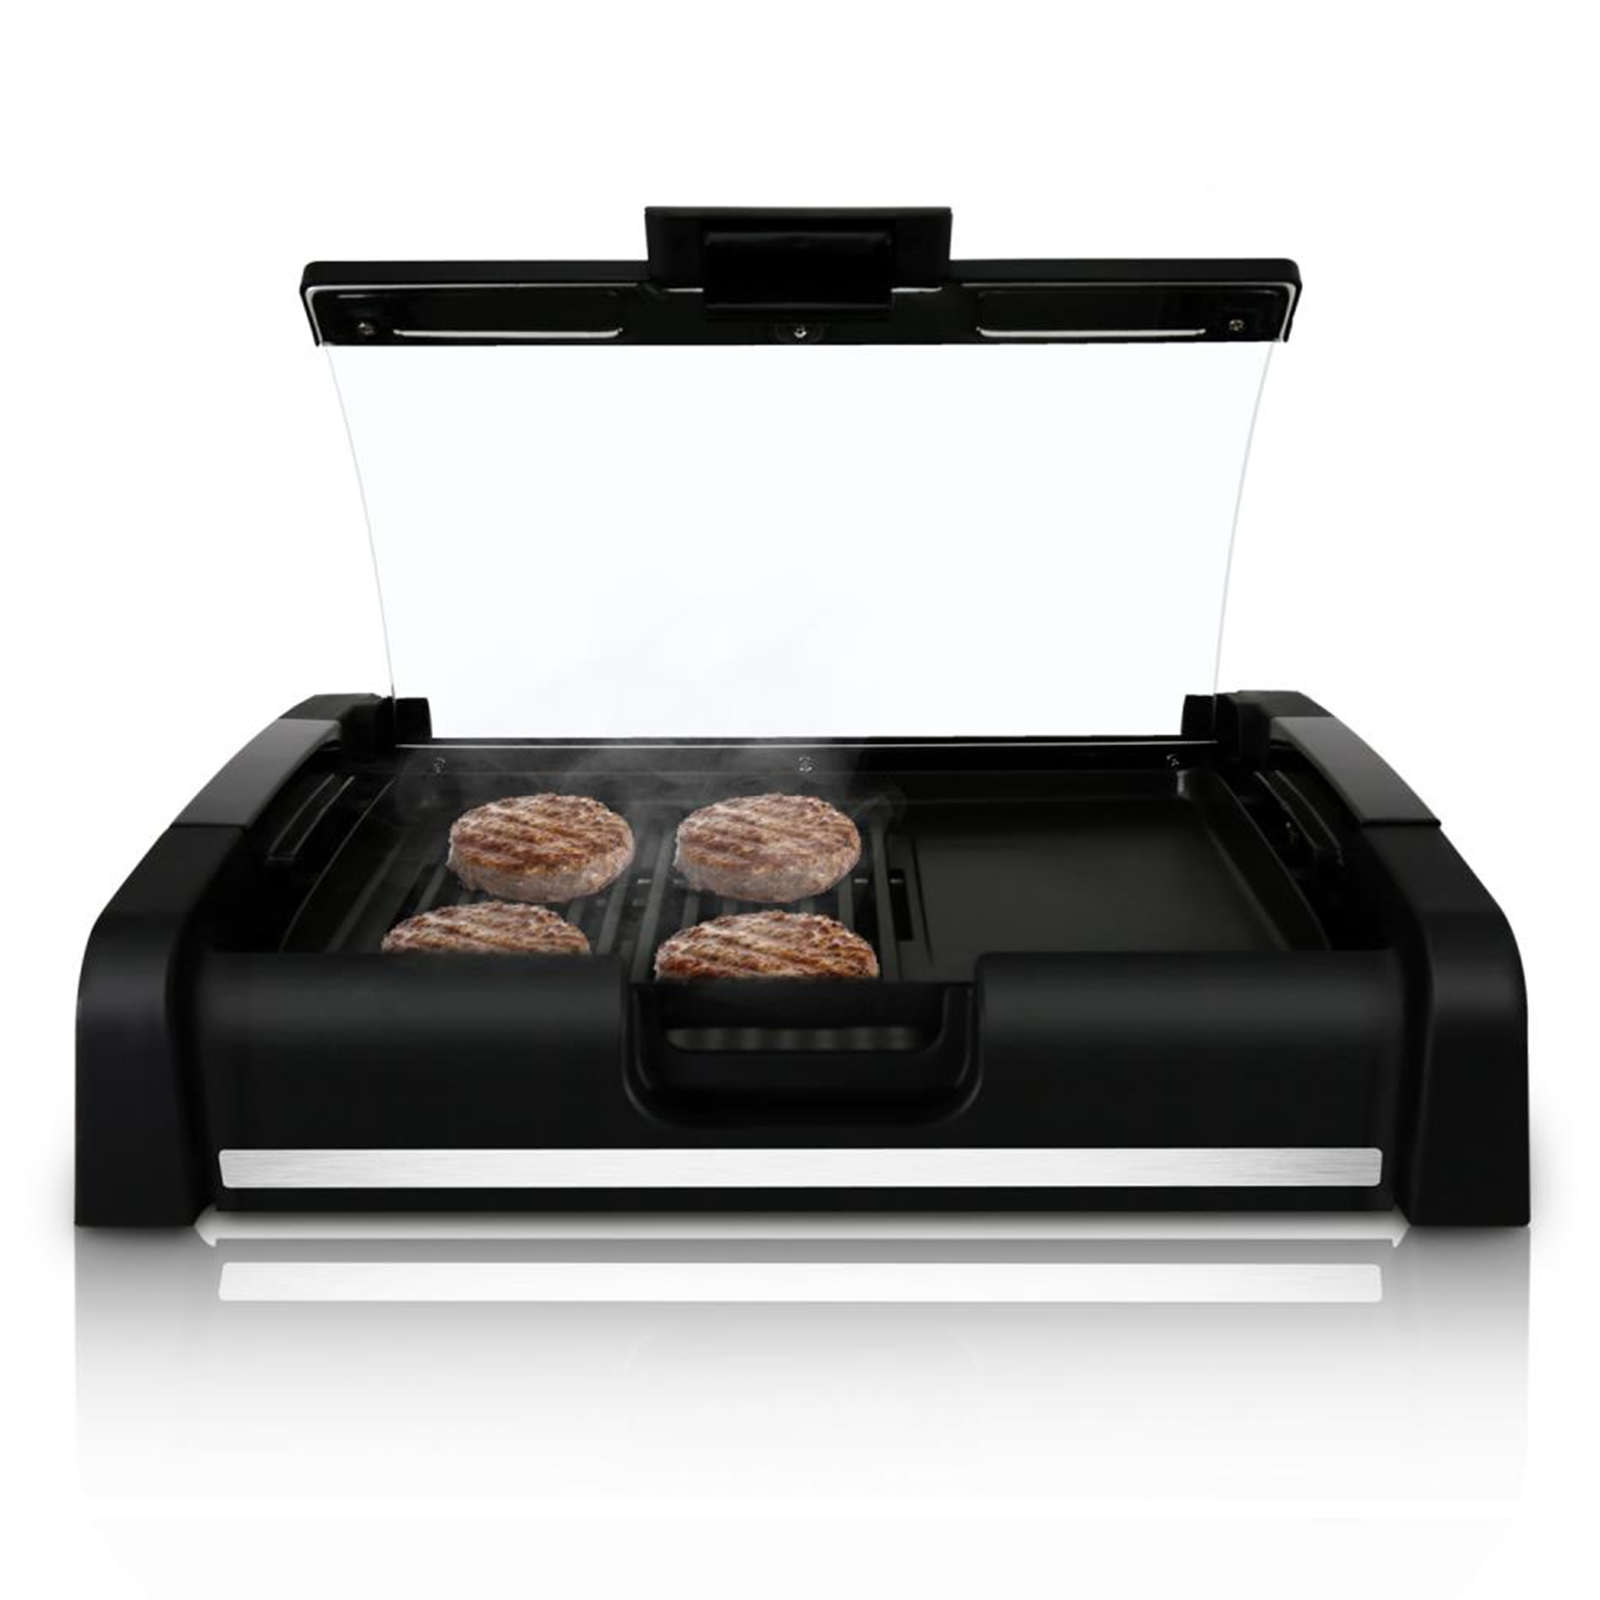 Nutrichef Electric Grill & Griddle Cooktop - Crepe Maker Hot Plate Cooktop with Glass Lid